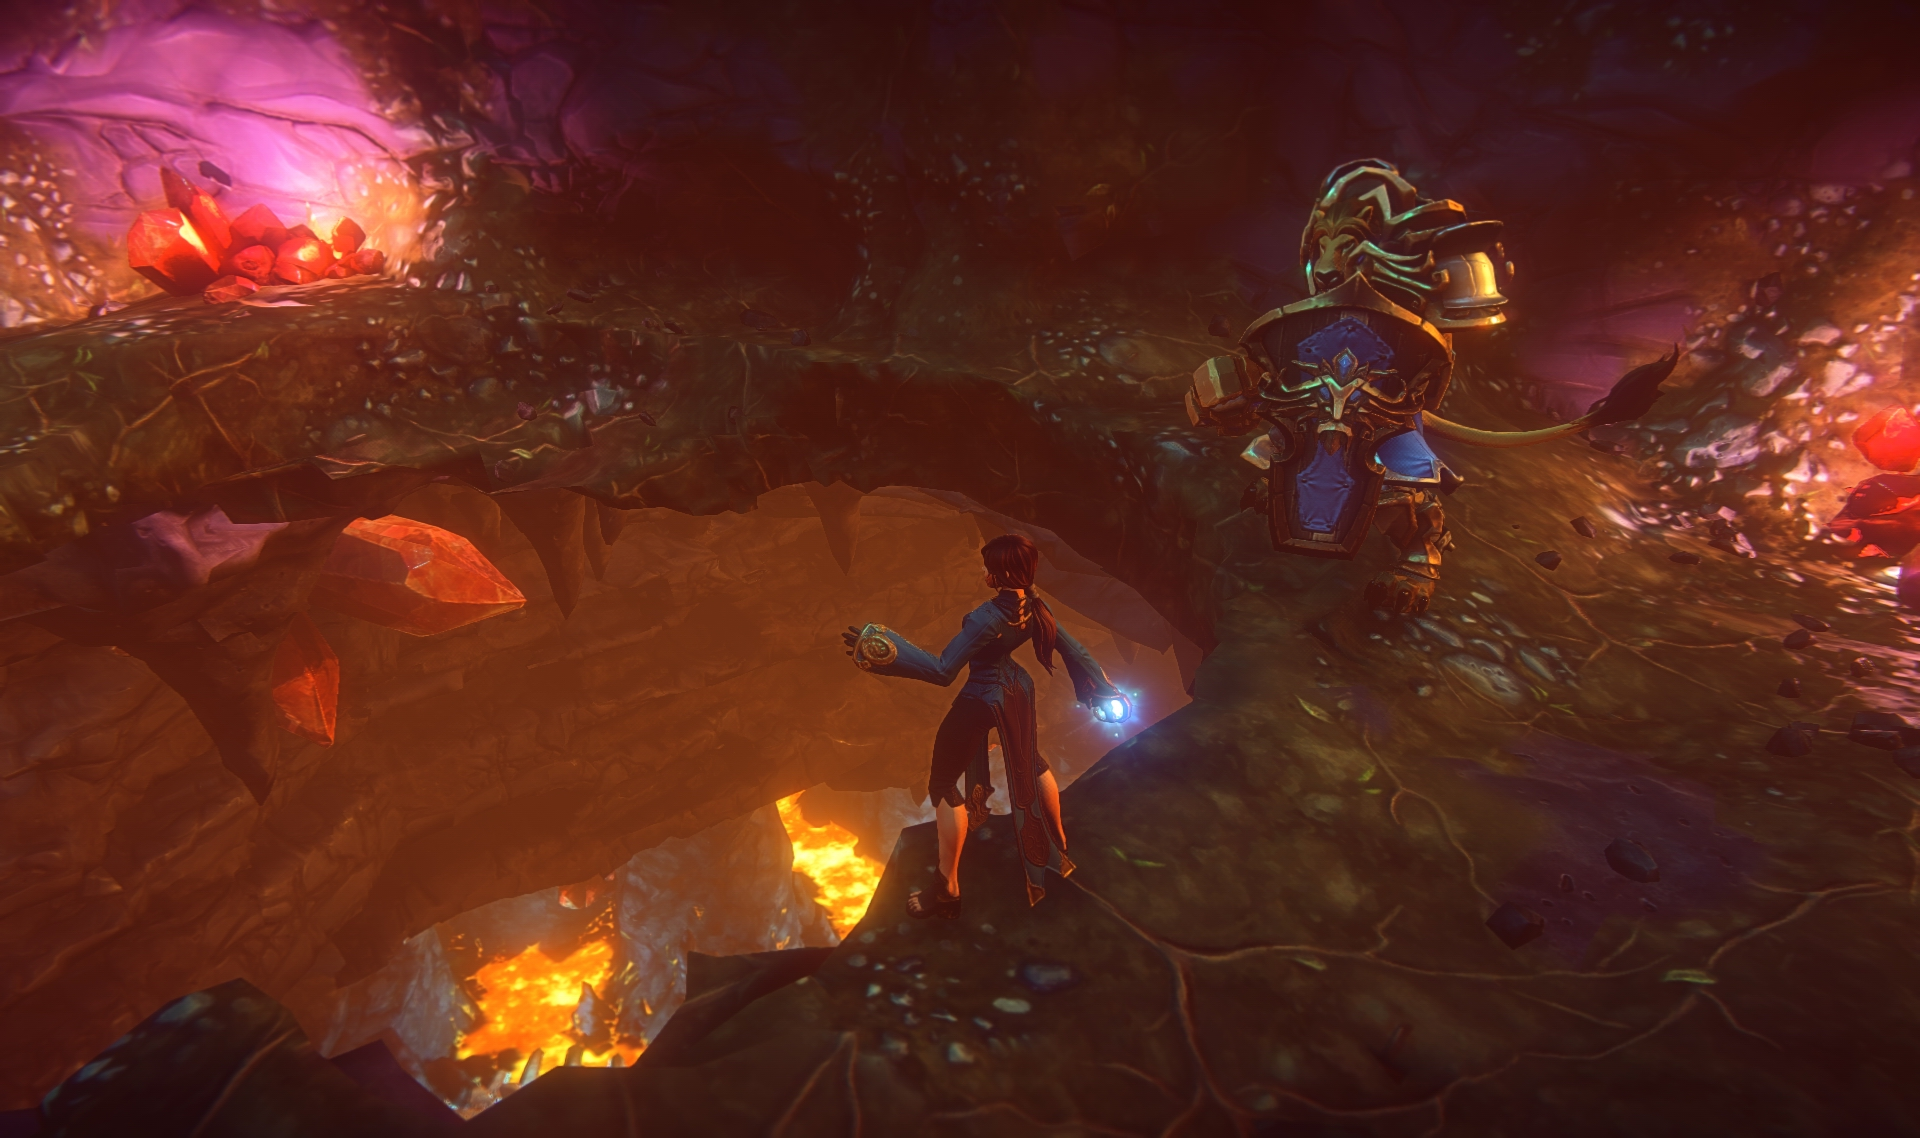 EverQuest Next: Free-To-Play, Destructible Environments, User-Made Content #28217